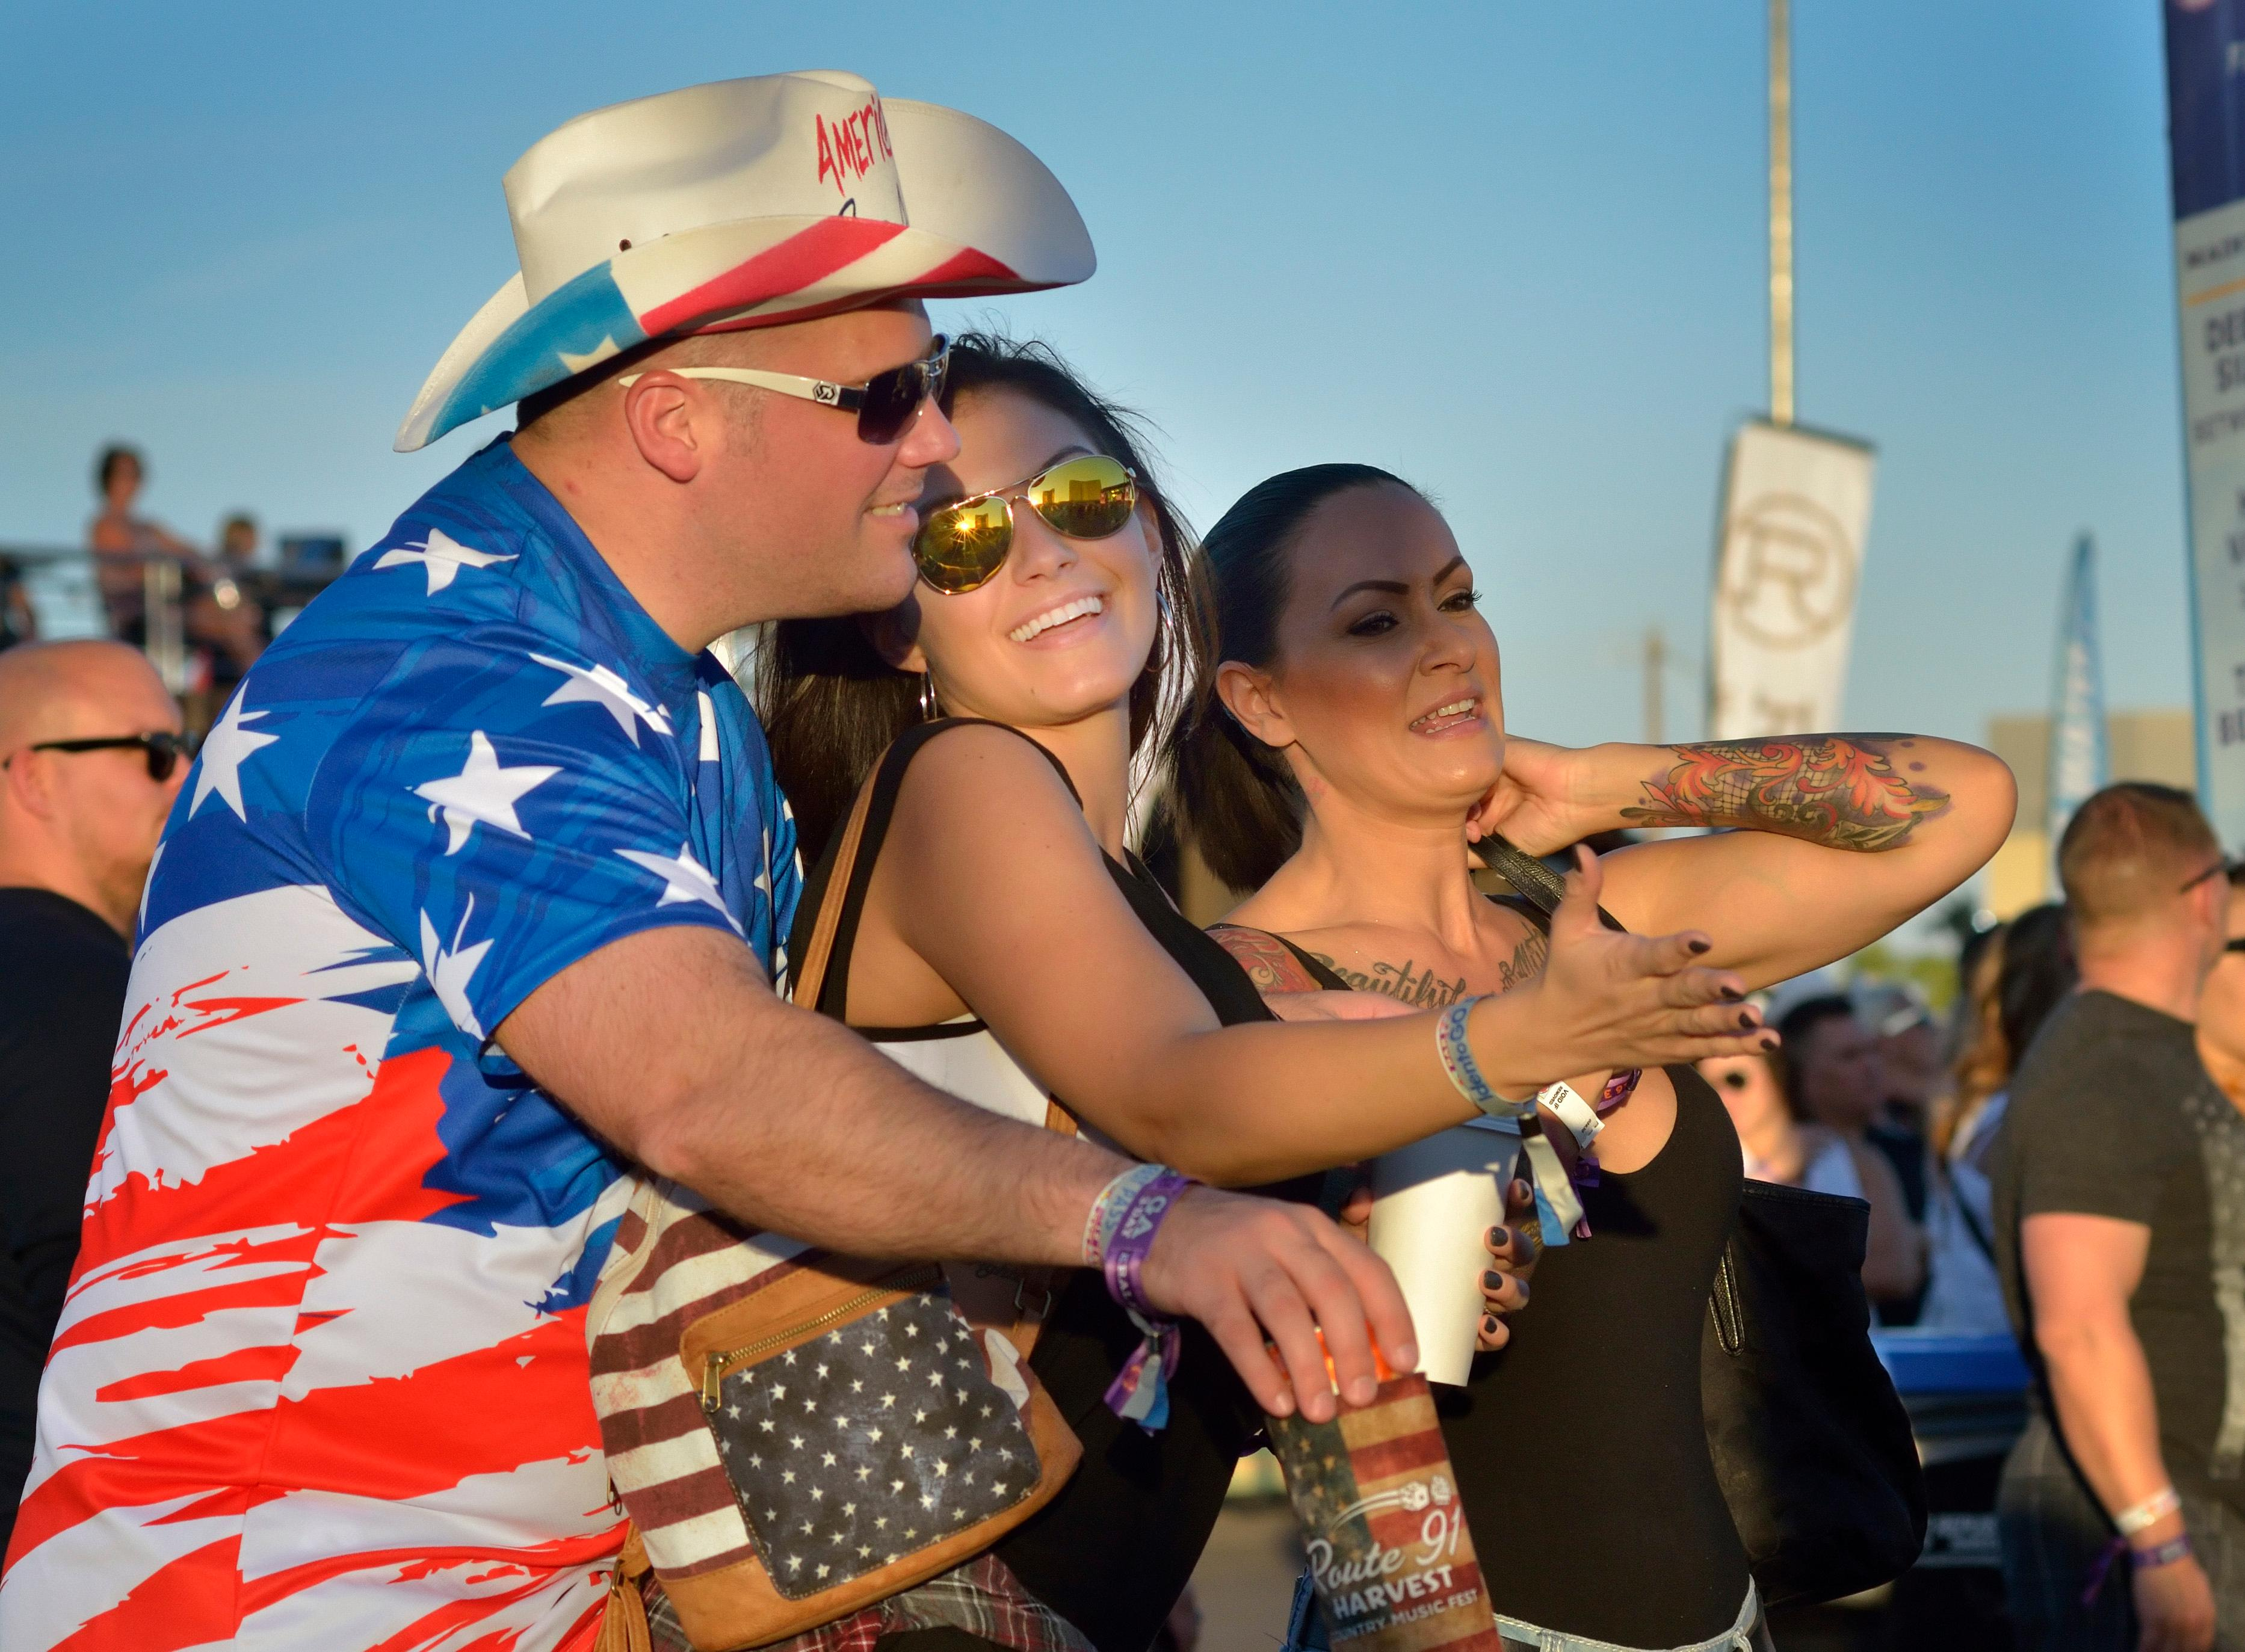 Stuart Smith, left, Ariana Gennaro, center, and Rena Powers dance during the Route 91 Harvest festival on Las Vegas Boulevard South in Las Vegas on Saturday, Sept. 30, 2017.  [Bill Hughes/Las Vegas News Bureau]